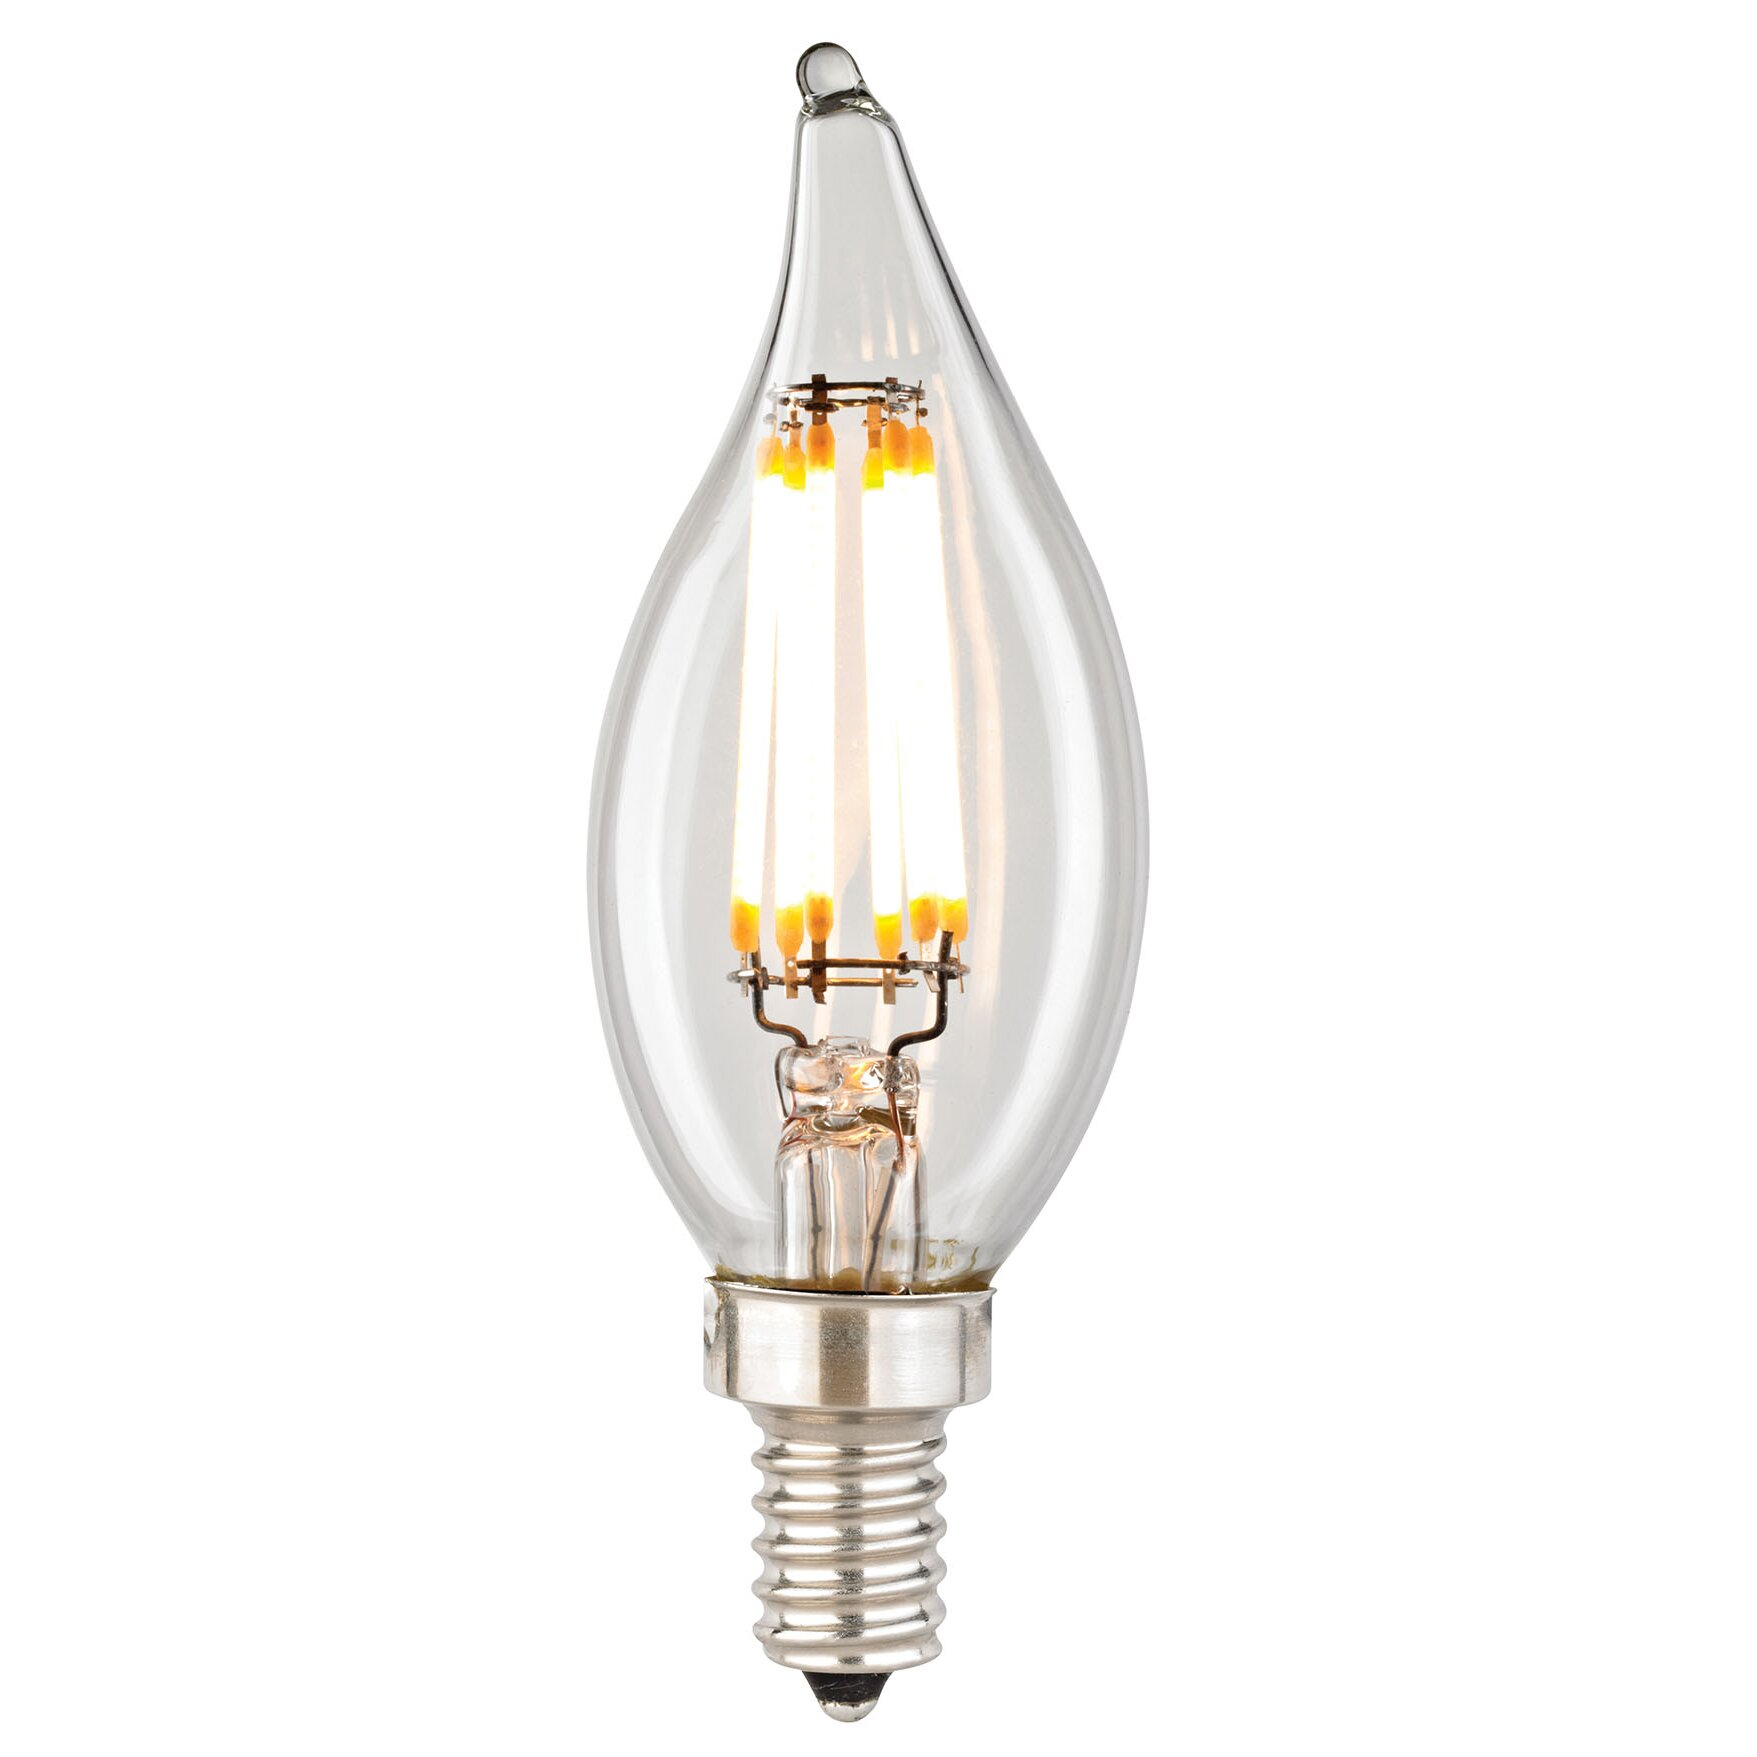 Candelabra Led Bulb: Elk Lighting Filament 6 Wattage Candelabra LED Light Bulb